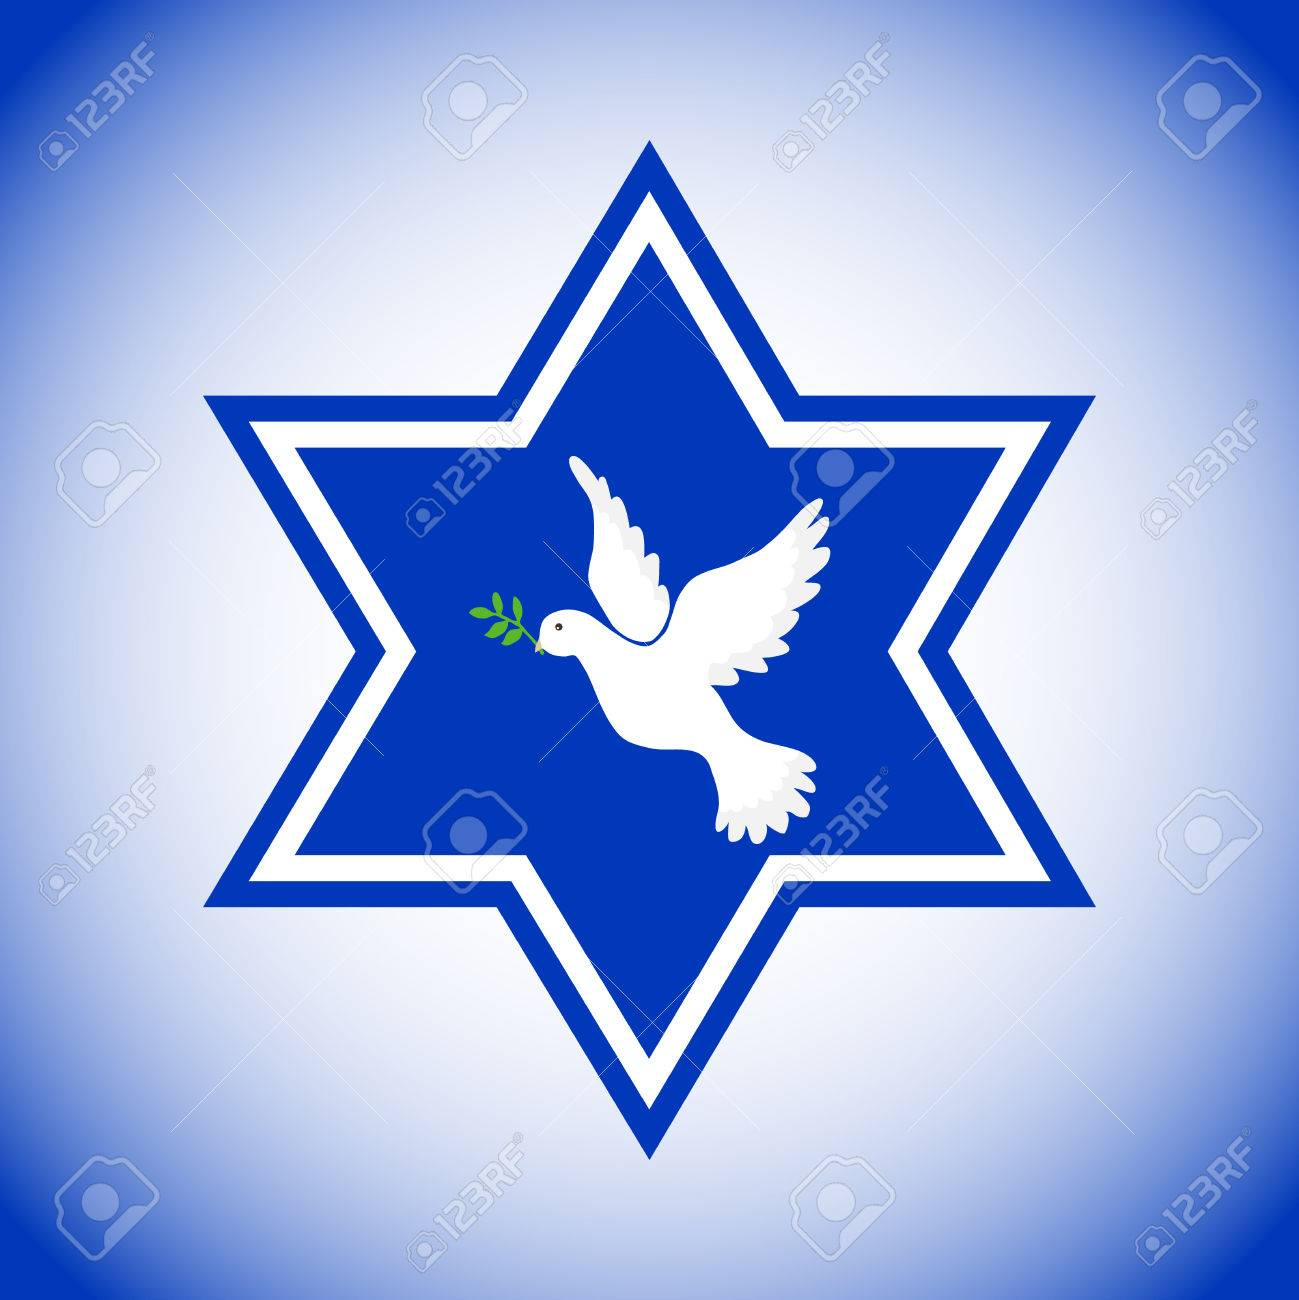 Star Of David With The Dove Of Peace The Symbol Of Israel Pigeon